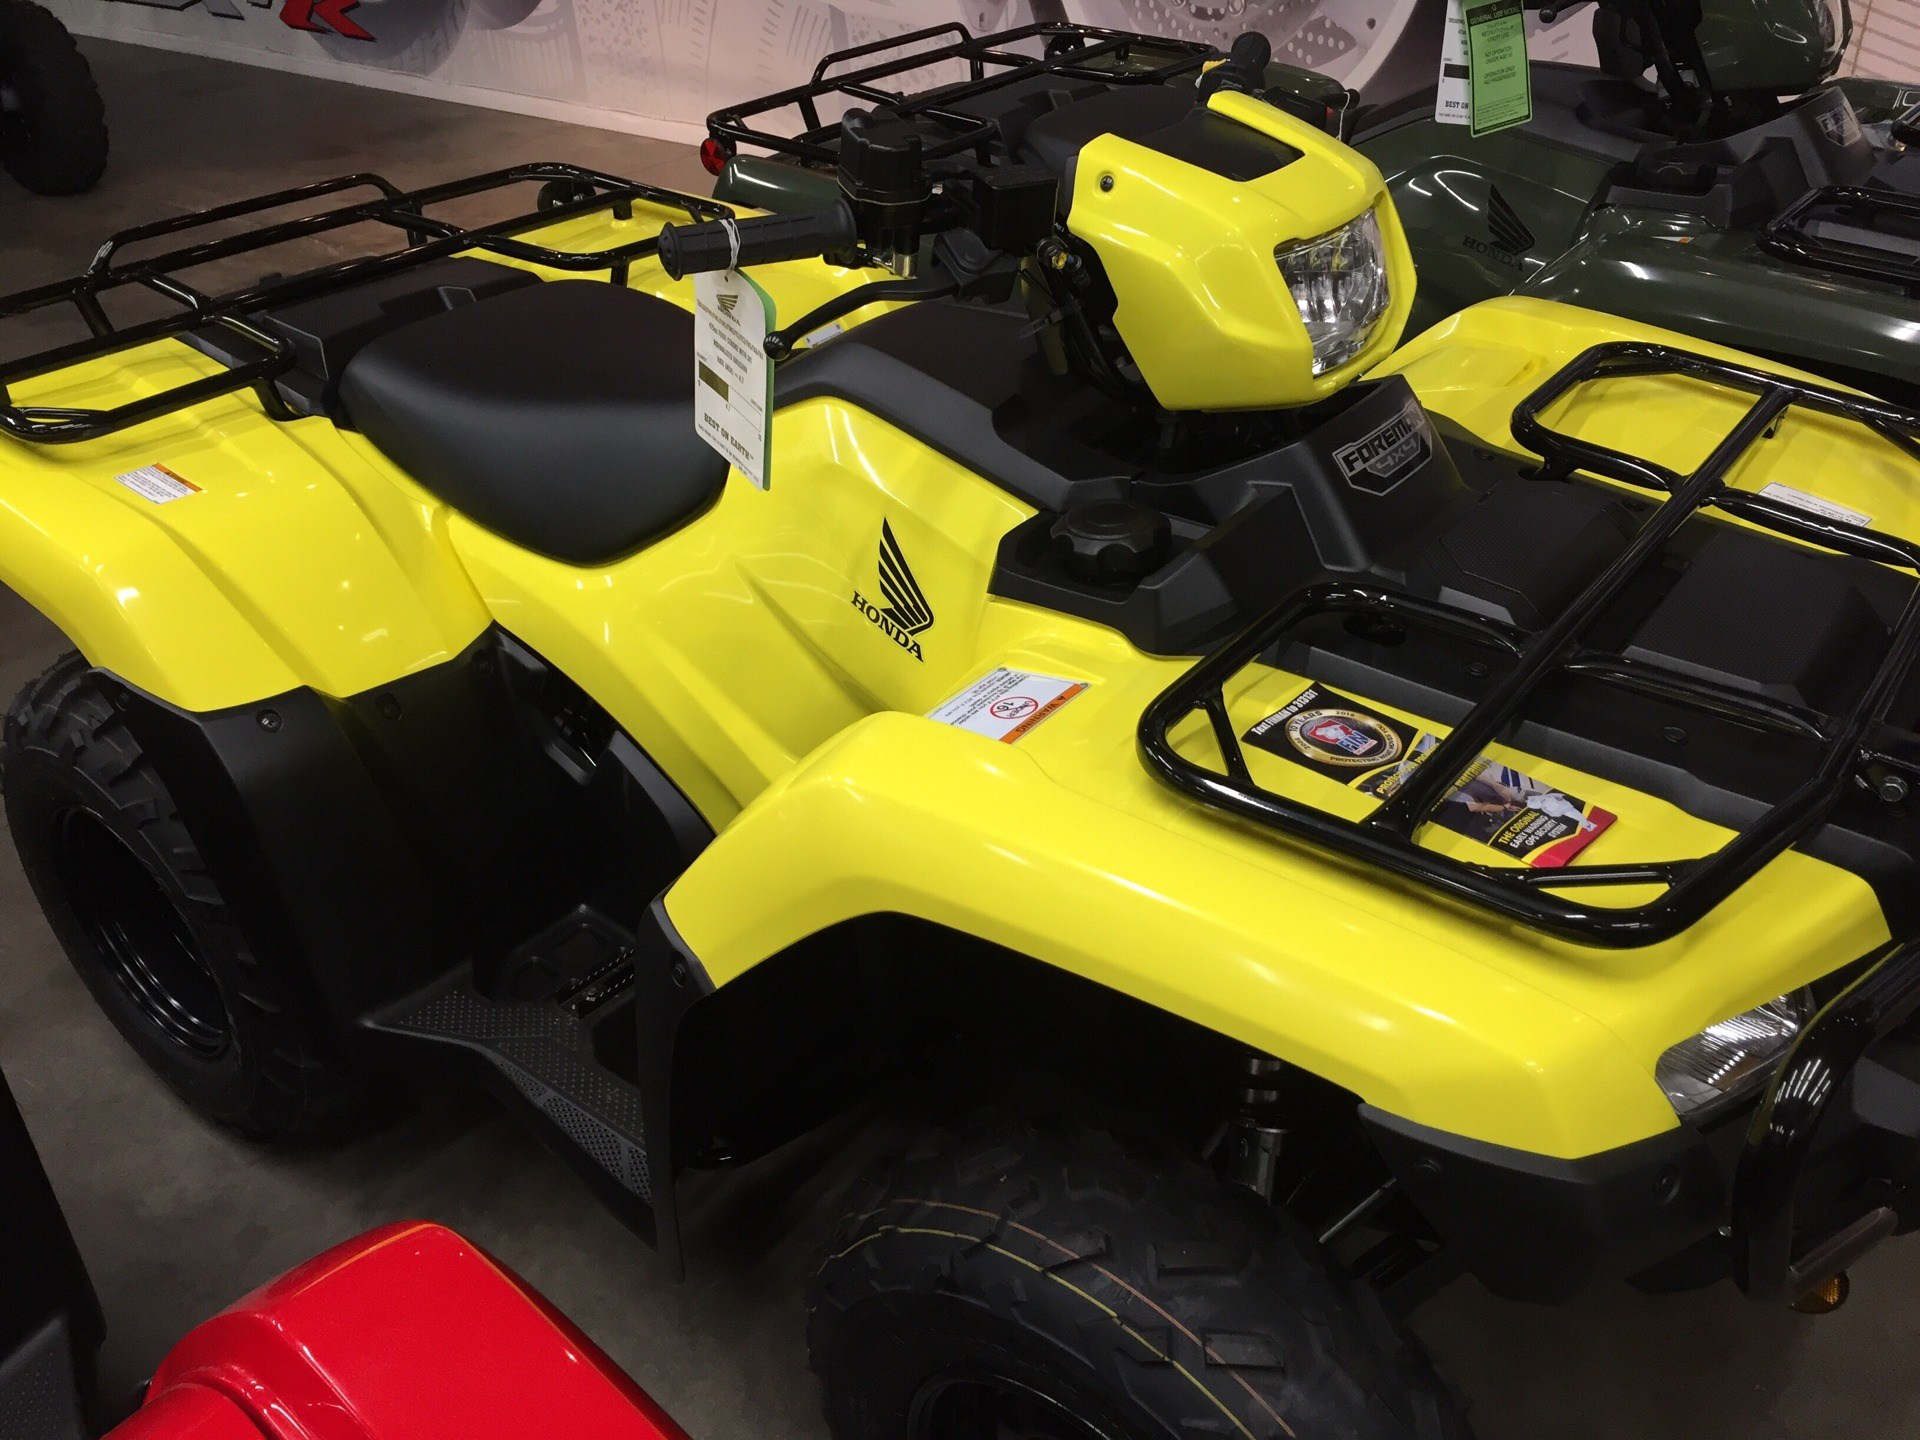 2019 Honda FourTrax Foreman 4x4 in Sanford, North Carolina - Photo 3